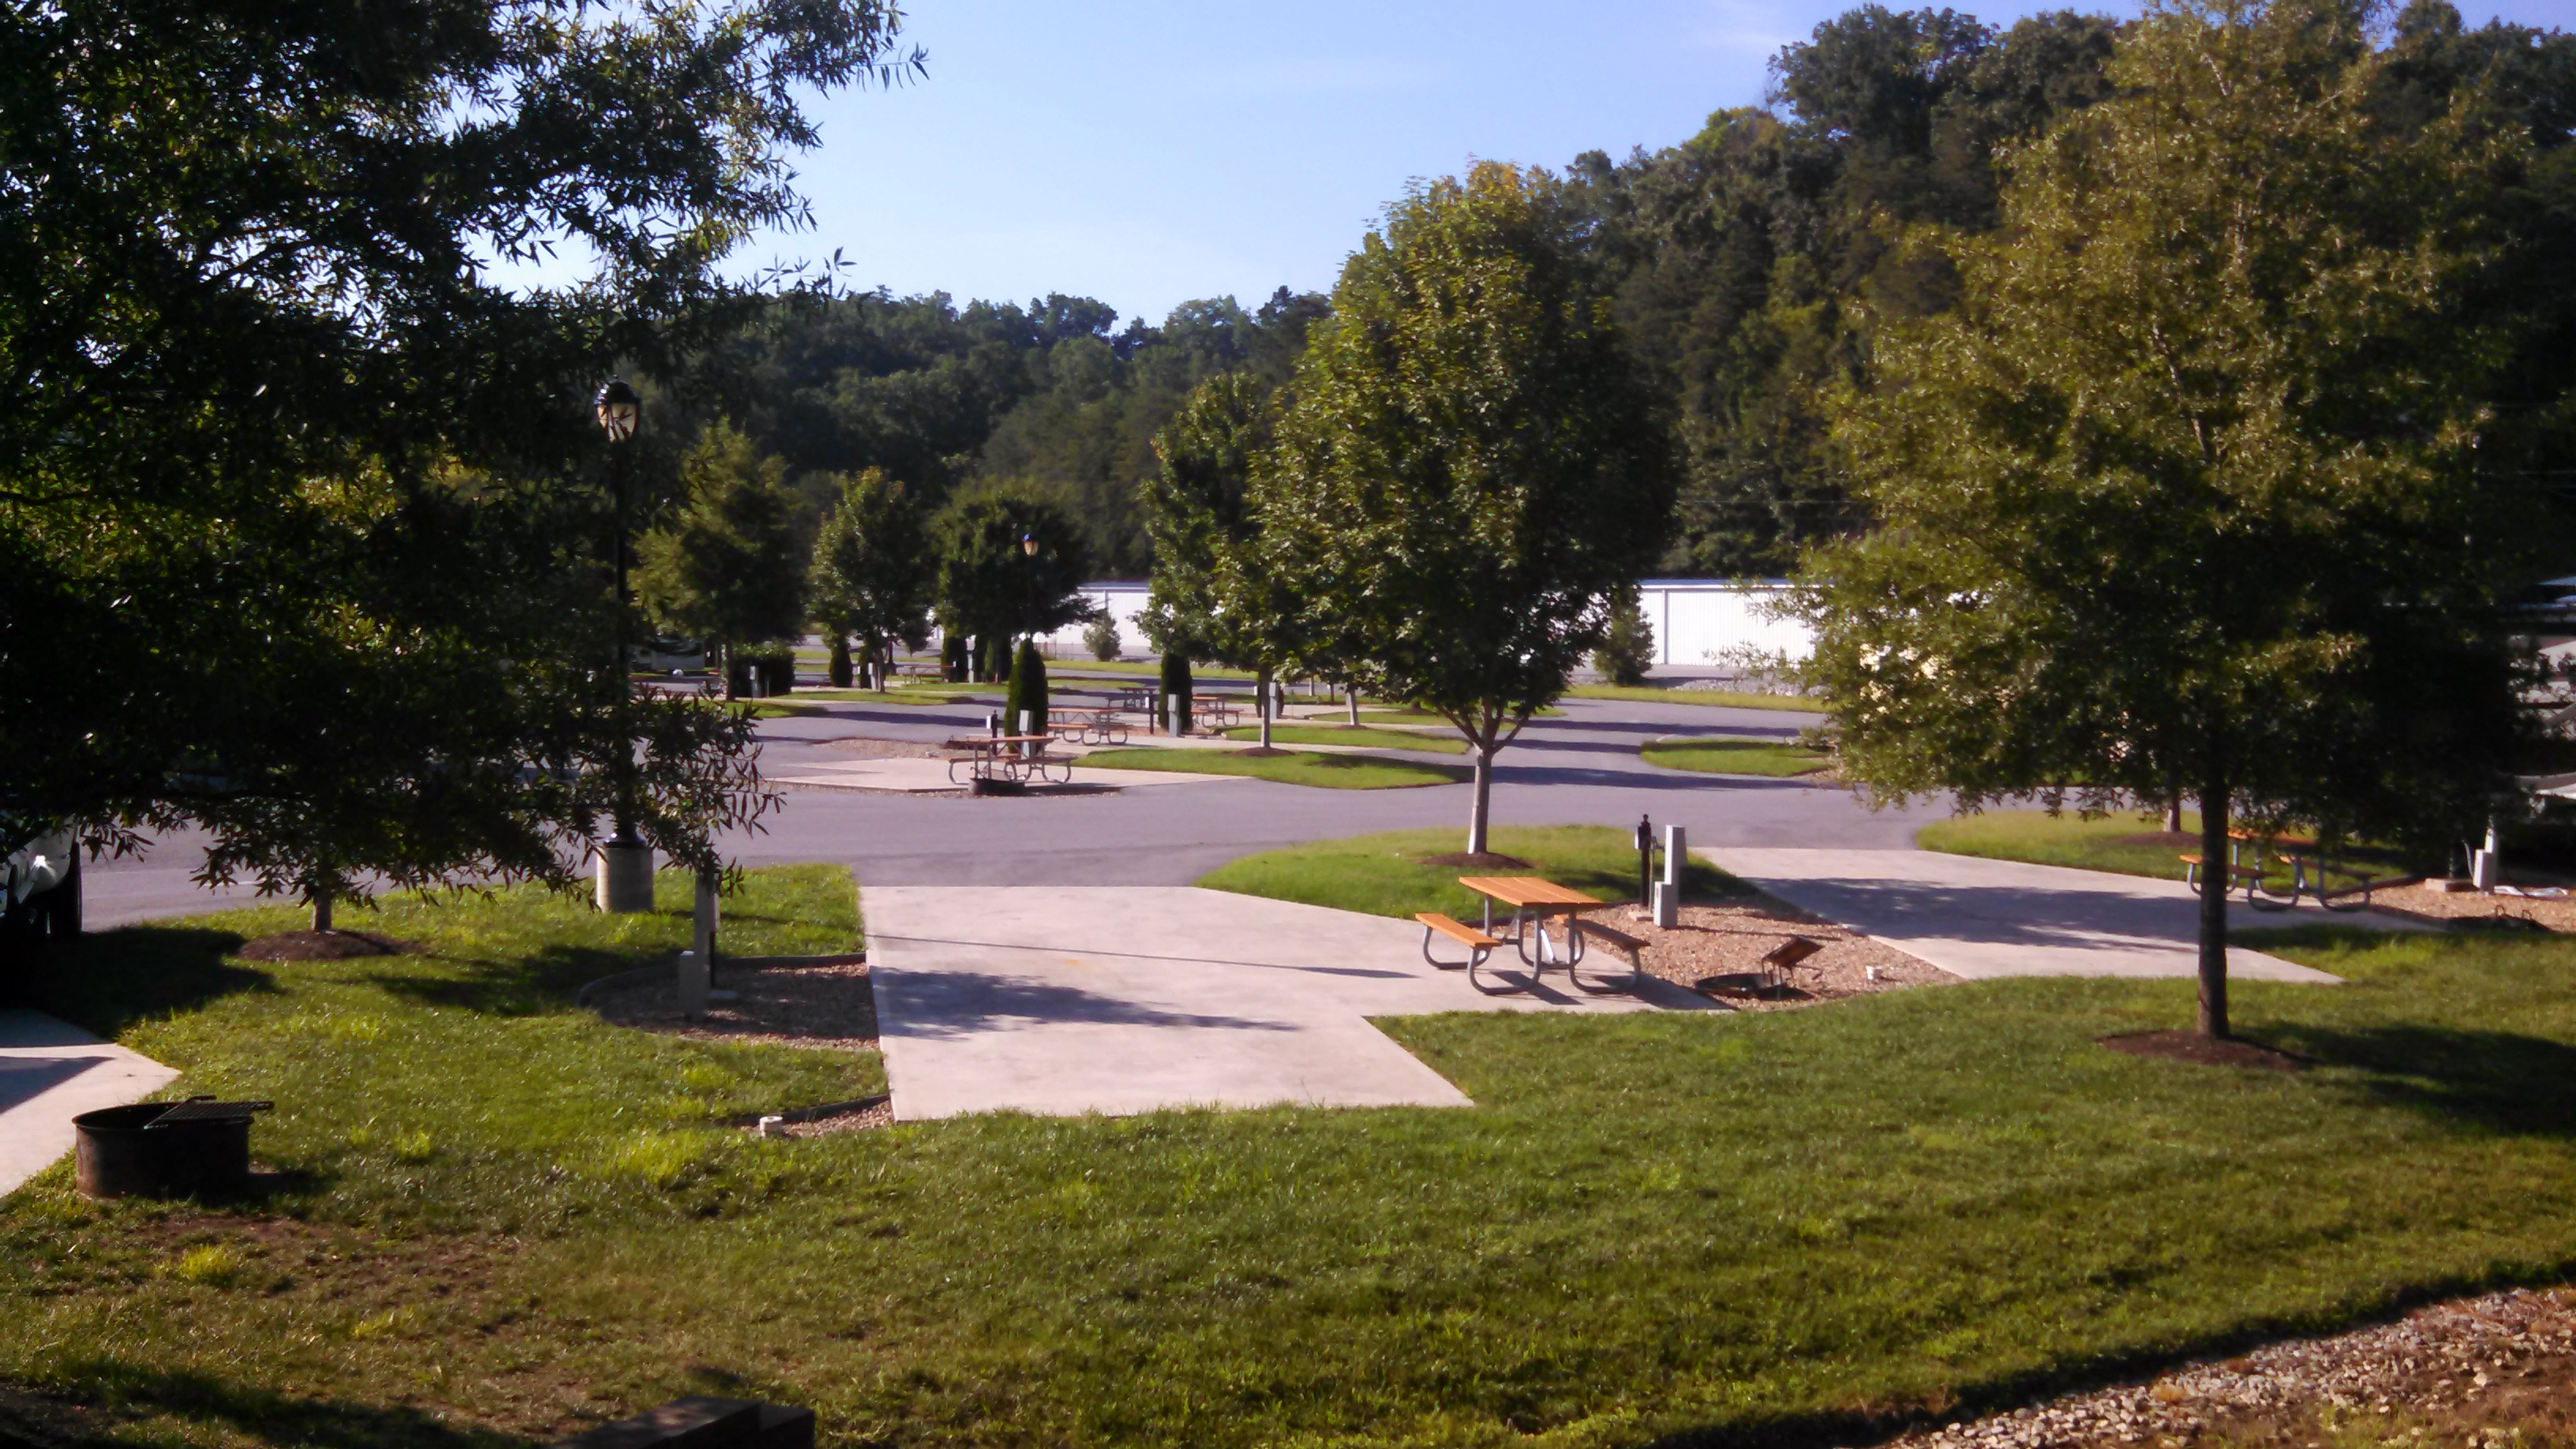 Pine Mountain RV Park by the Creek - RV pad